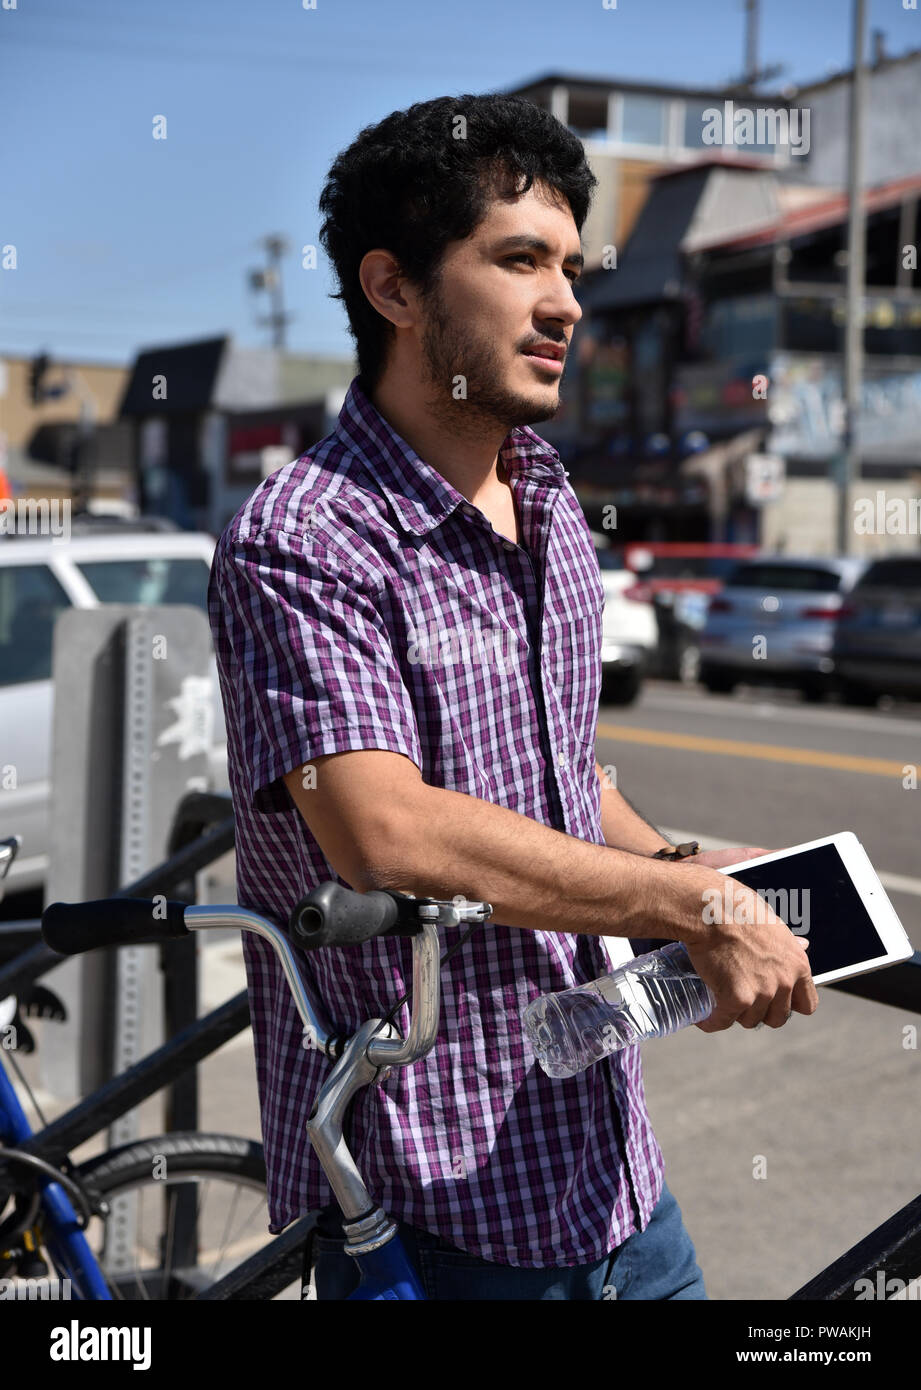 Attractive young generation z young man leaning against a bike rack in a laid back beach town. - Stock Image